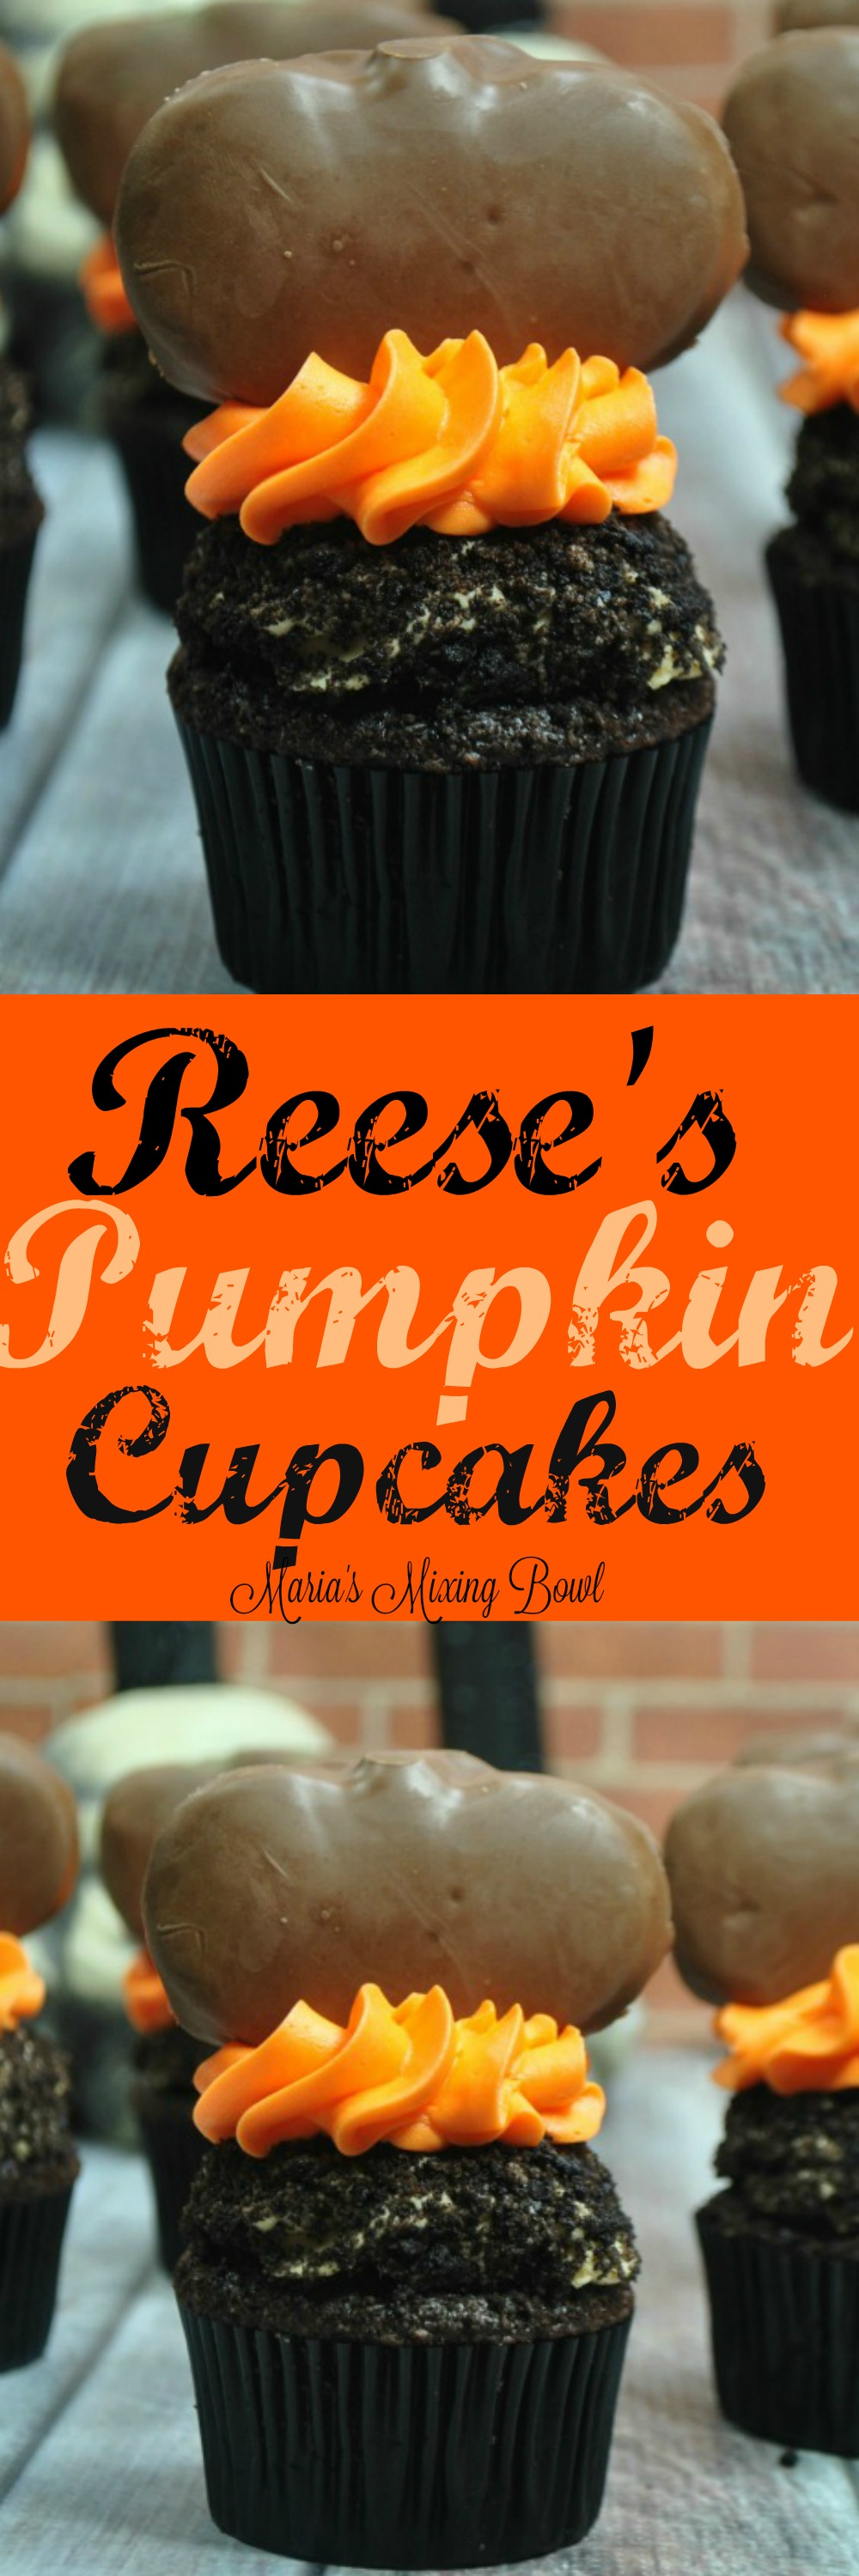 Reese's Pumpkin Cupcakes - It's no secret to anyone that knows me that I love peanut butter and chocolate. There is nothing better than Reese's pumpkins this time of year! Place on top of a chocolate cupcake that is frosted...OMG!!